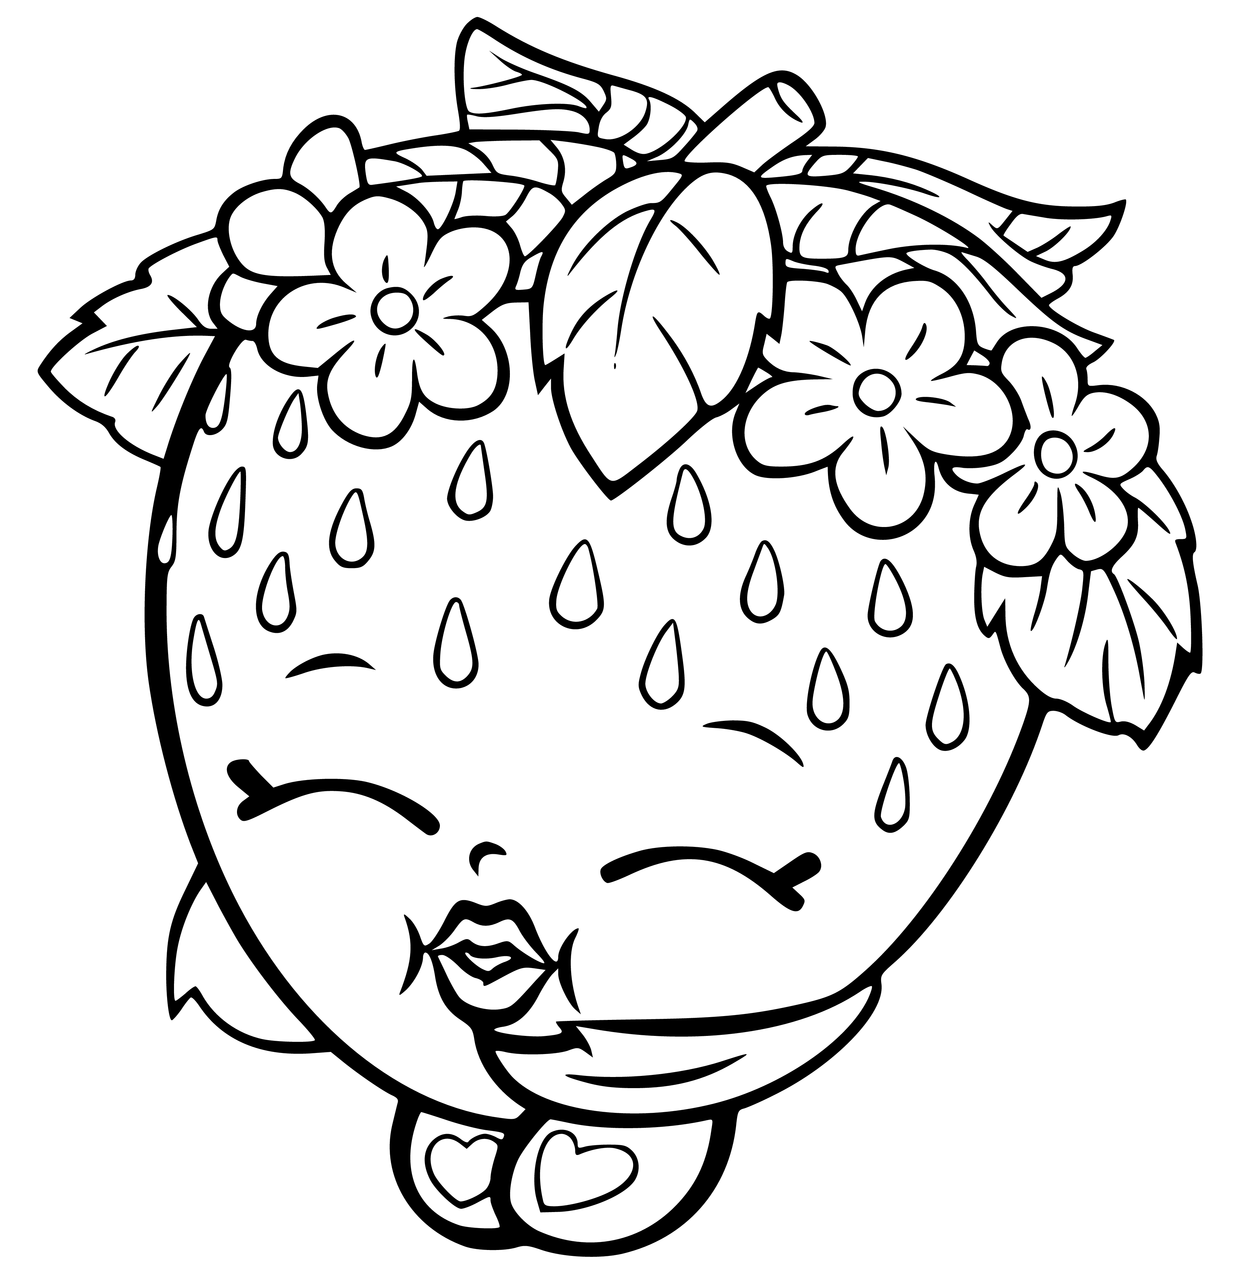 Shopkins coloring pages best coloring pages for kids for Free coloring book pages to print